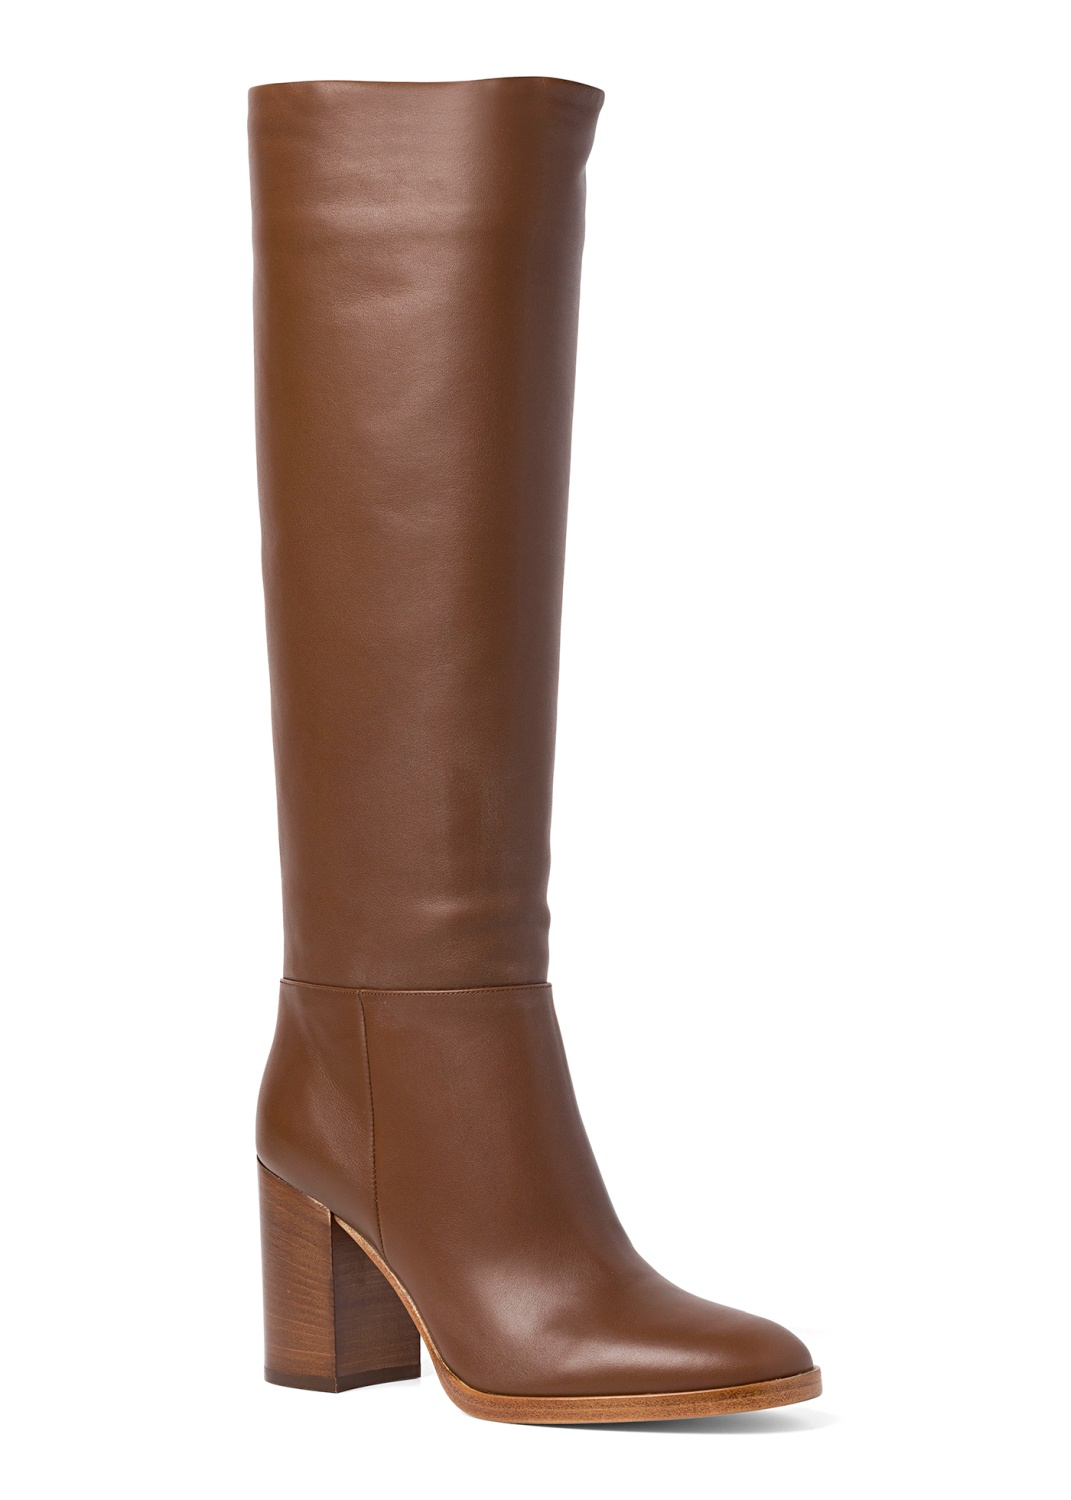 6_High Boot Nappa Stacked Heel image number 1